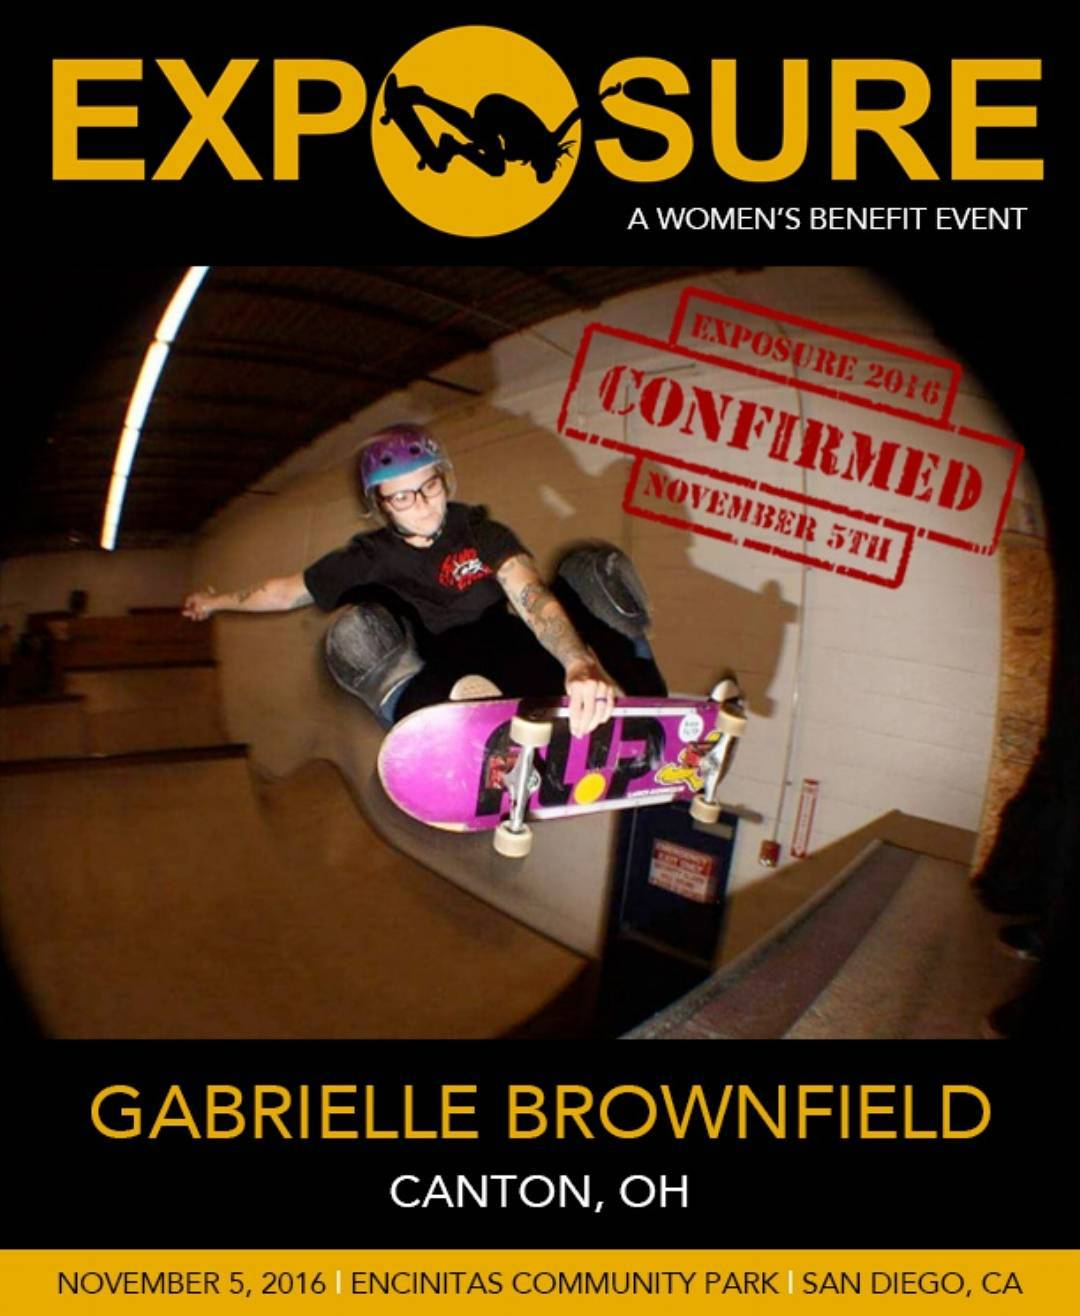 Happy to announce the stylistic @imjustgabs is headed to EXPOSURE!!